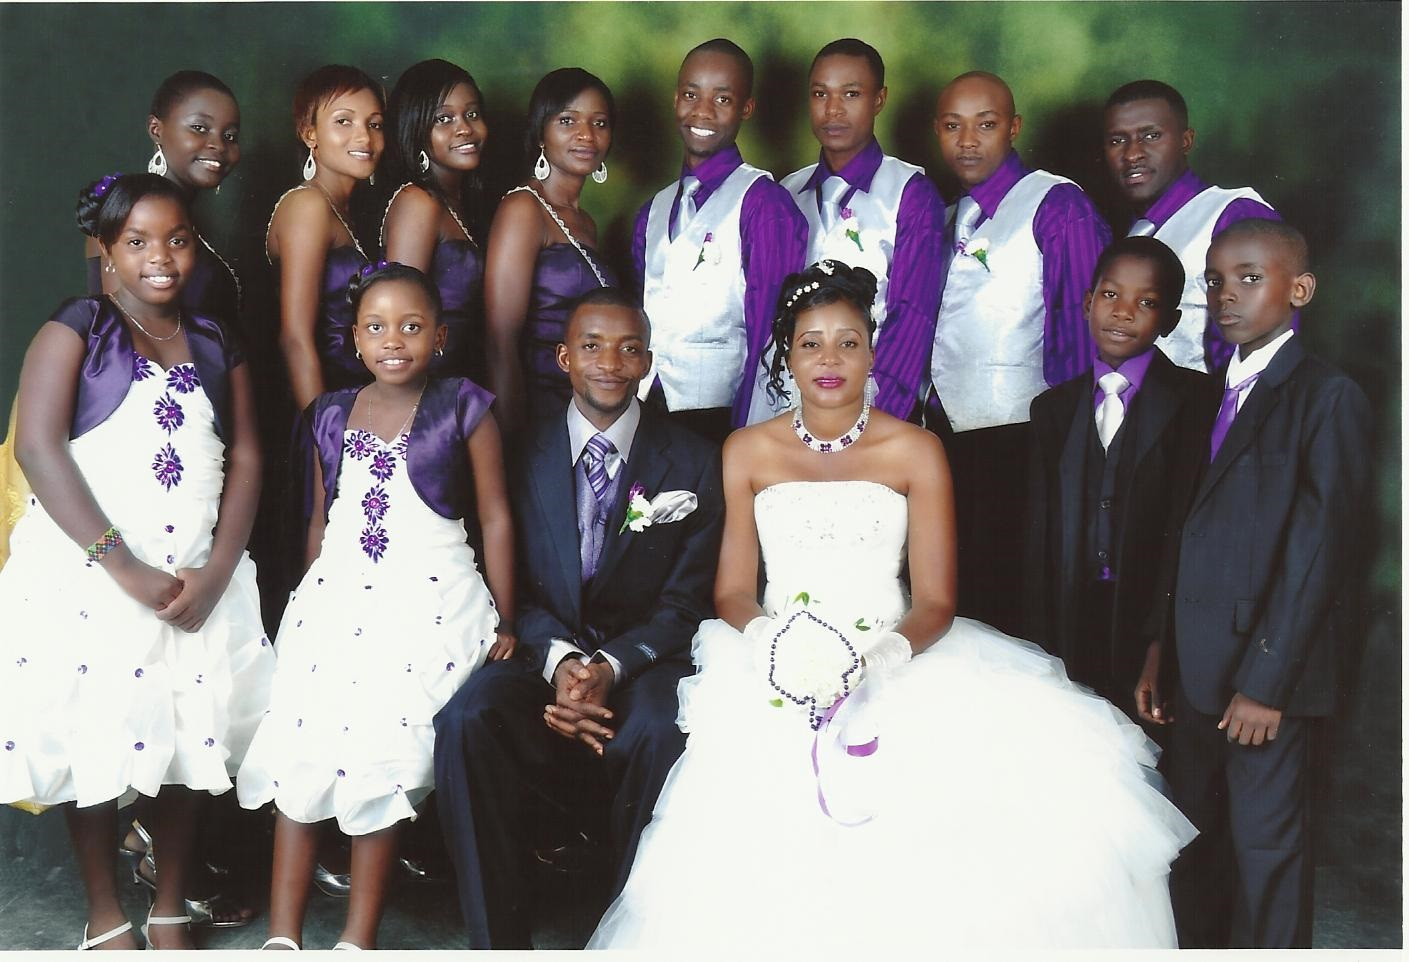 Wedding Dresses Shoes And Accessories In Tanzania